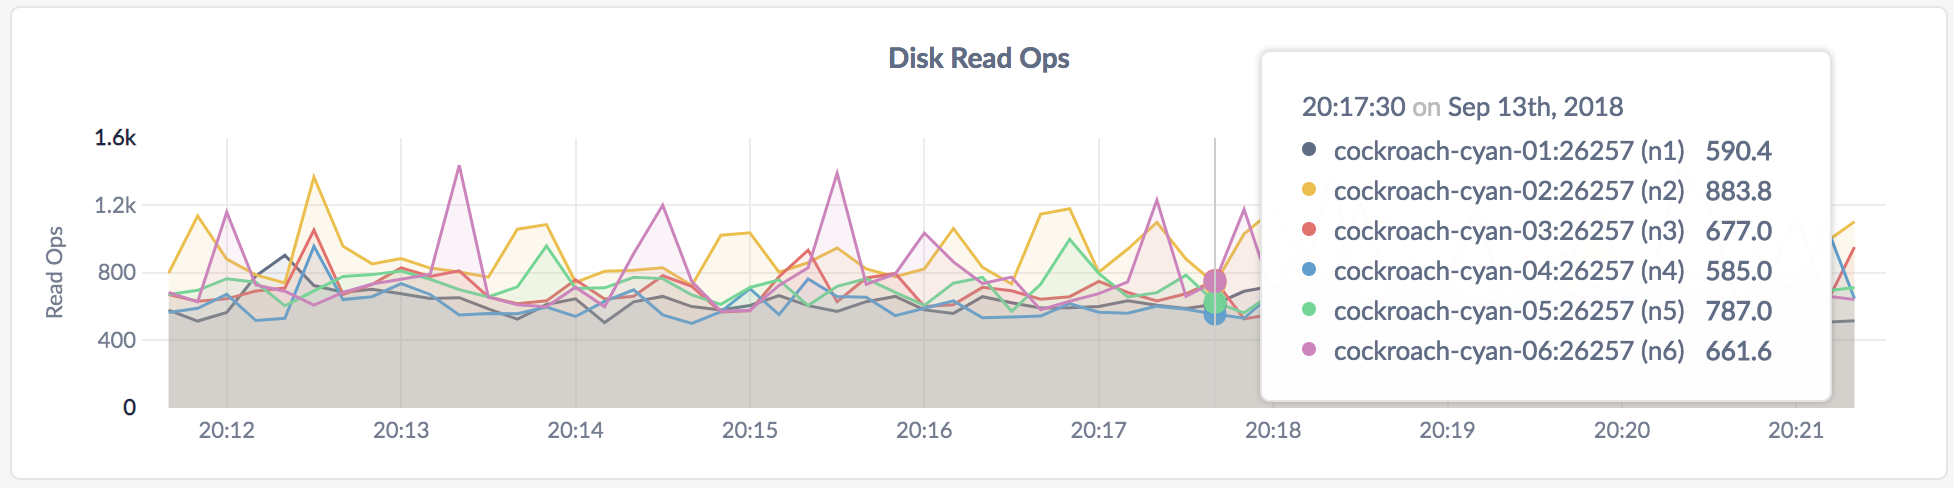 DB Console Disk Read Ops graph